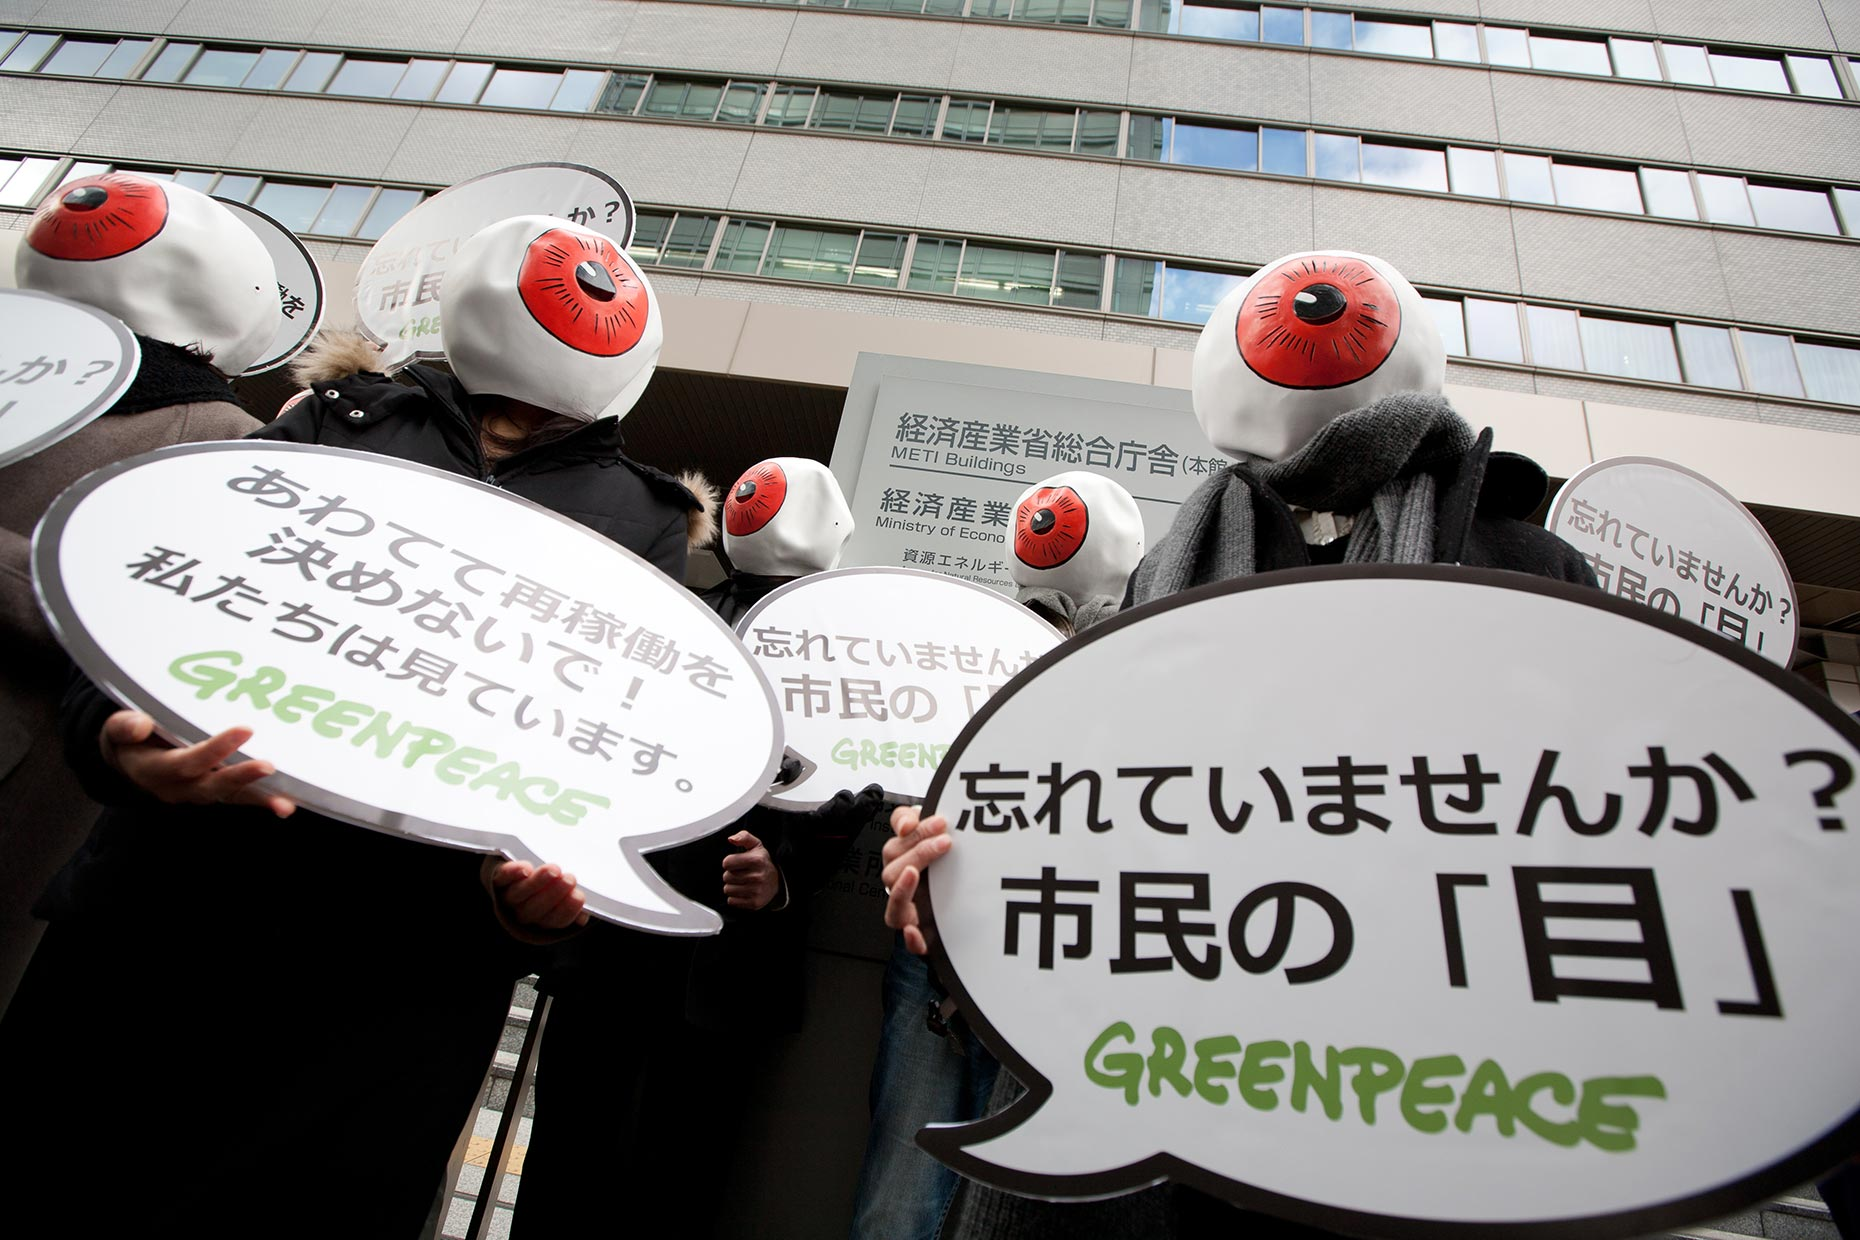 GREENPEACE protest in Japan, by Scotland Greenpeace photographer